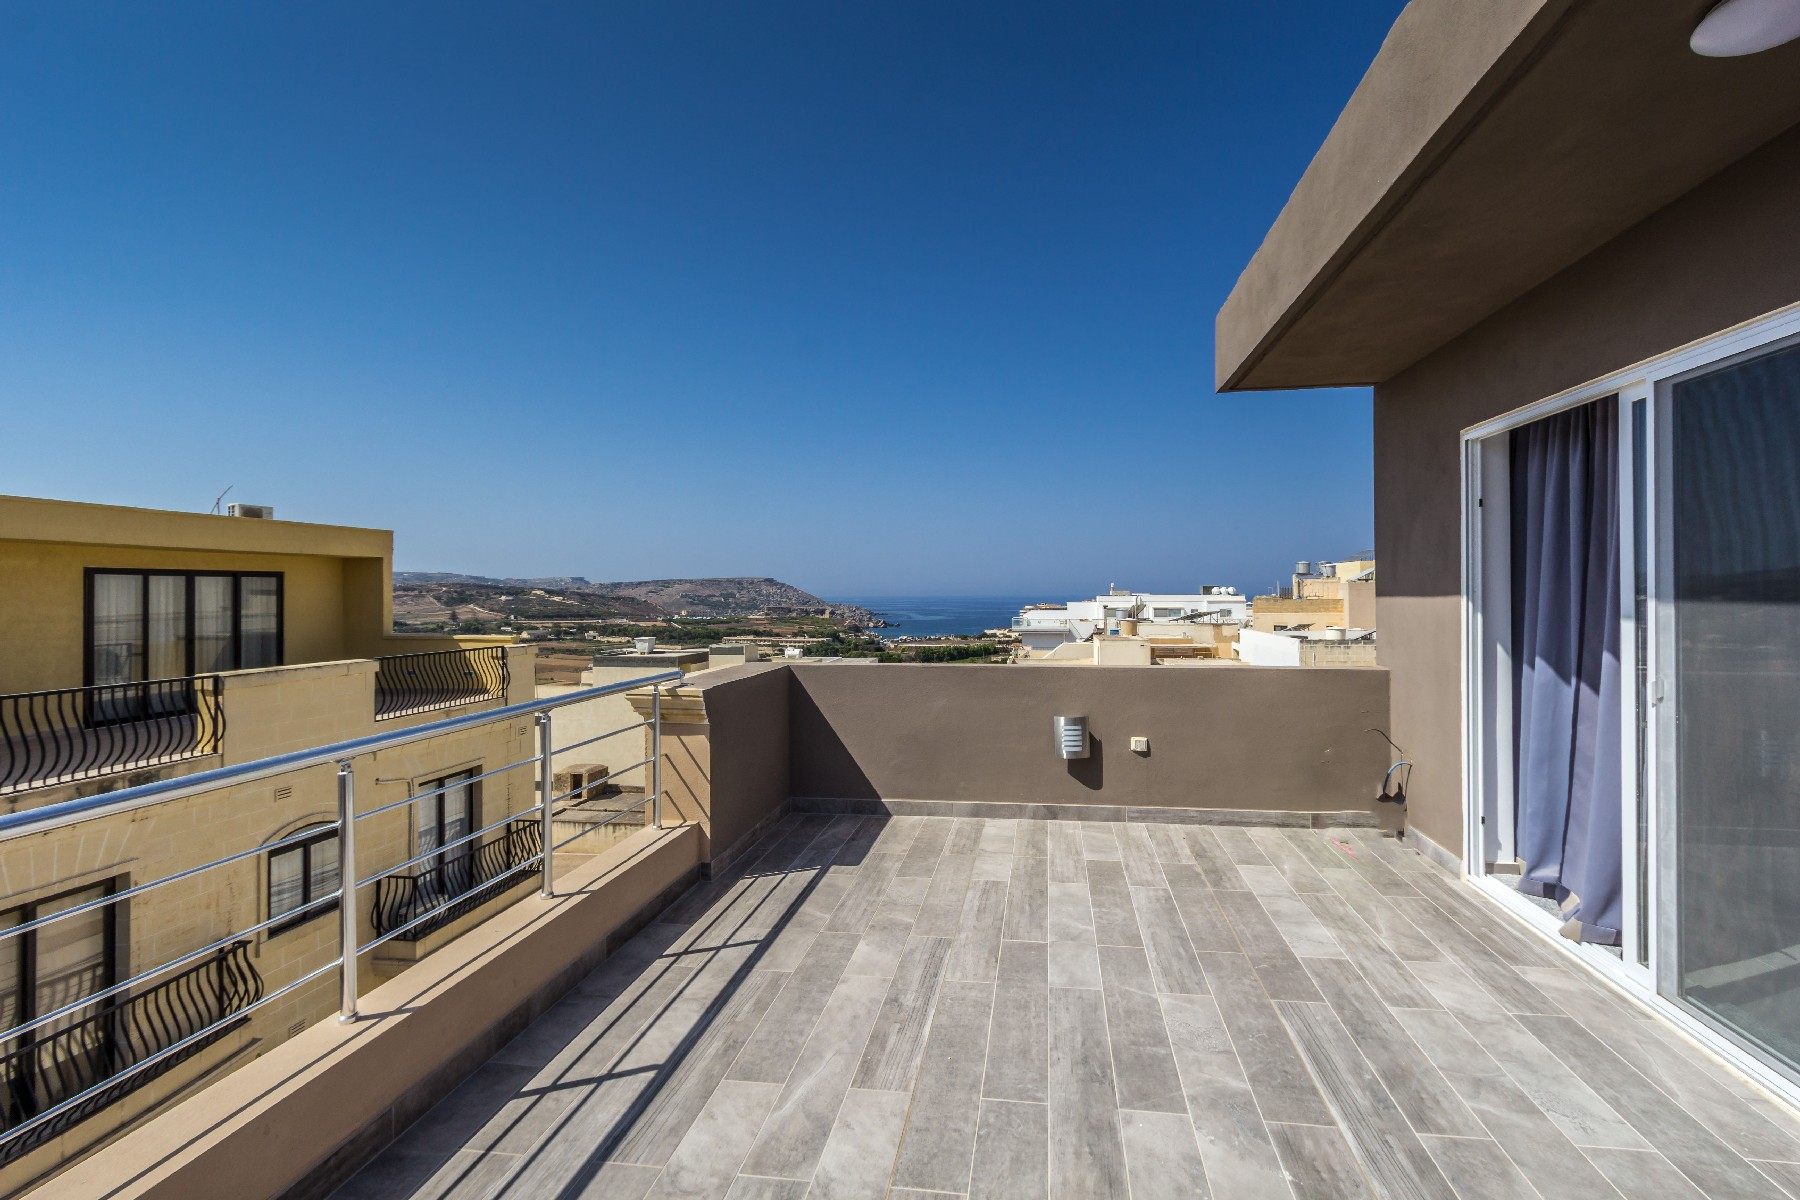 Apartment for Rent at Brand new Penthouse Manikata, Mellieha, Malta